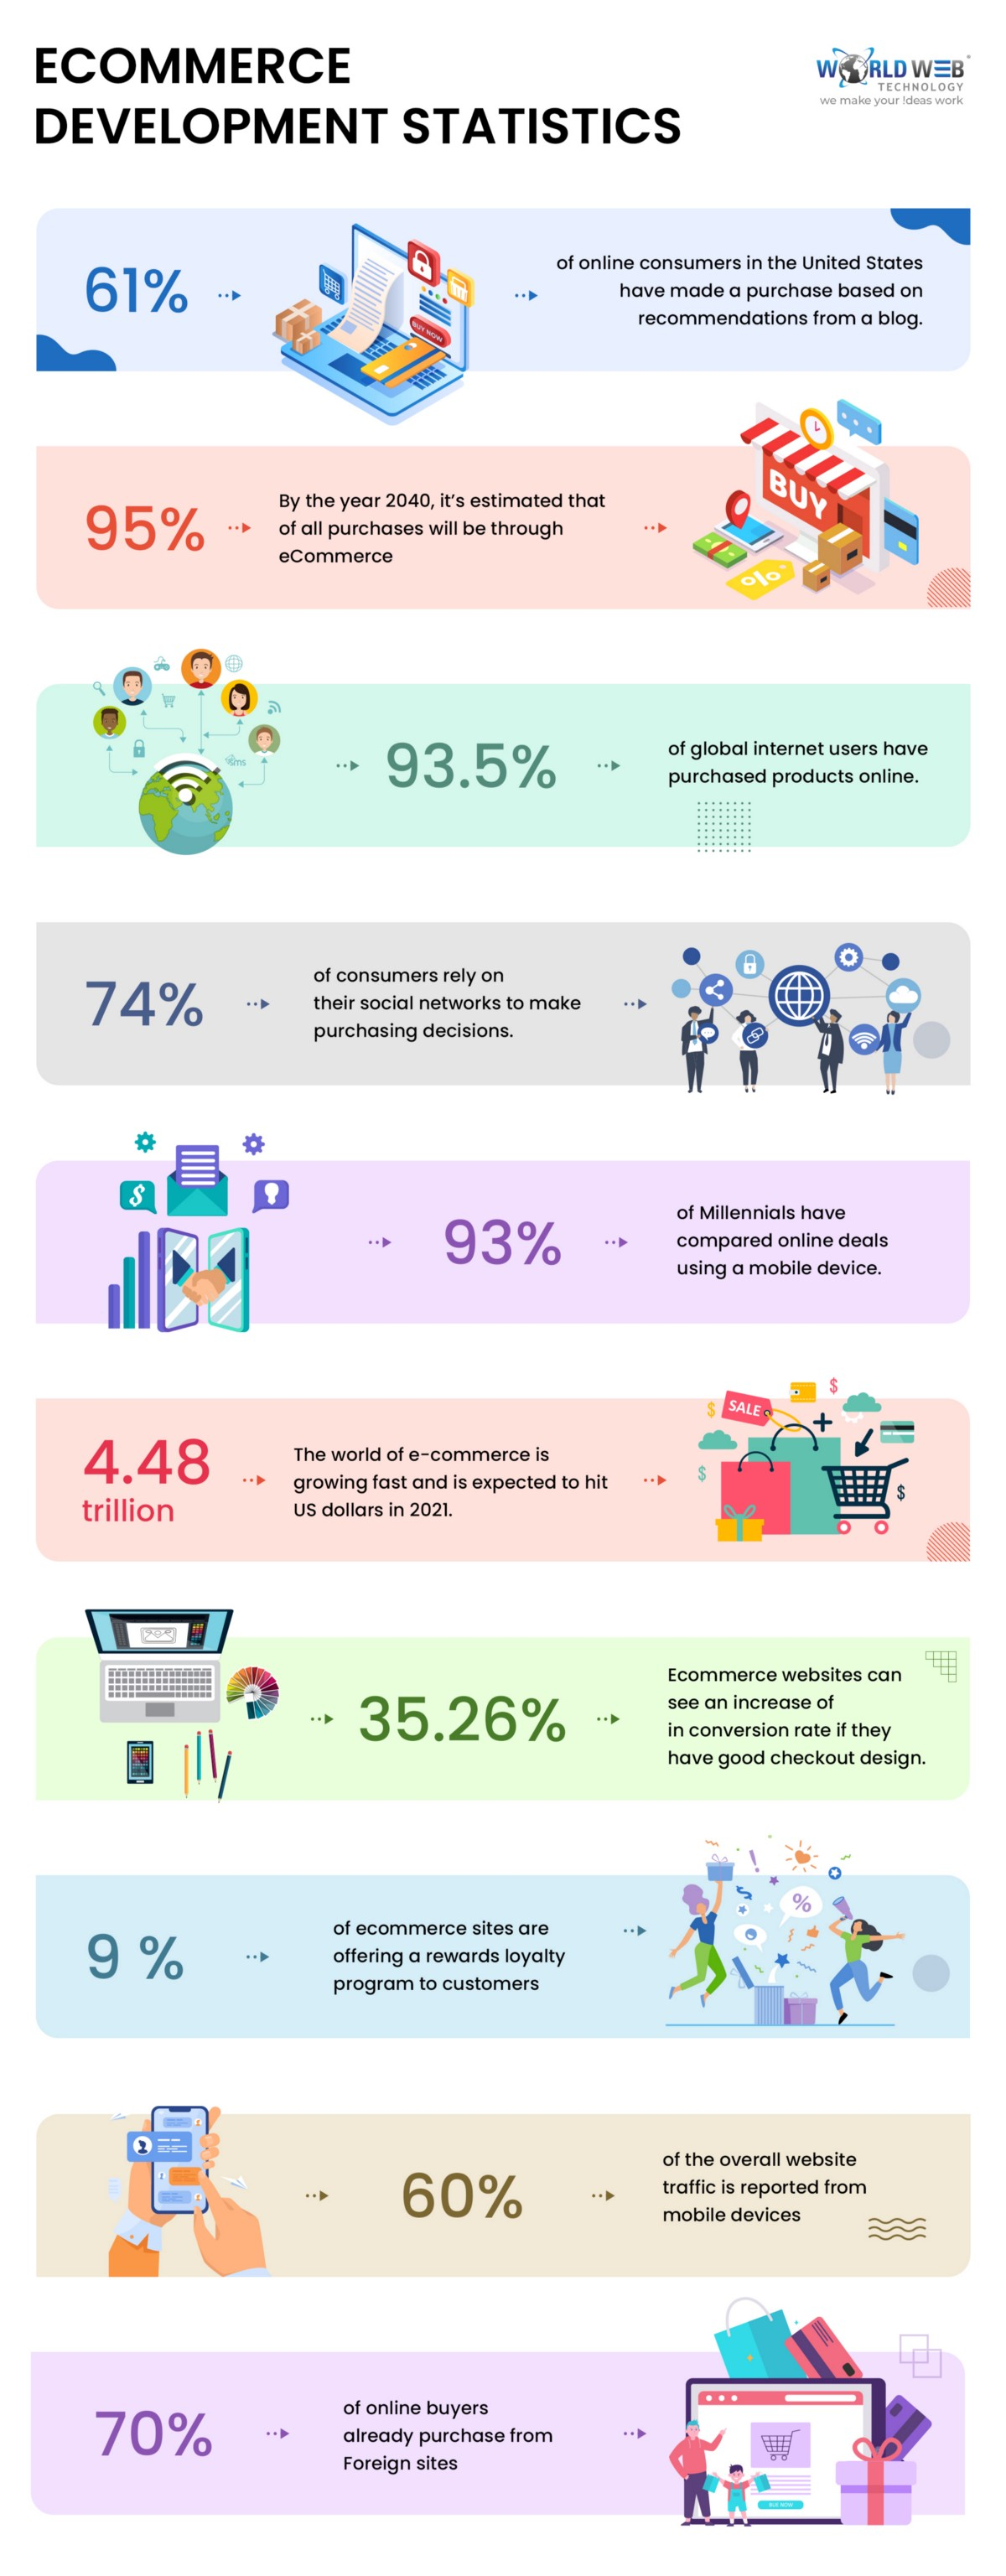 10 E-commerce Development Statistics that you need to know in 2021